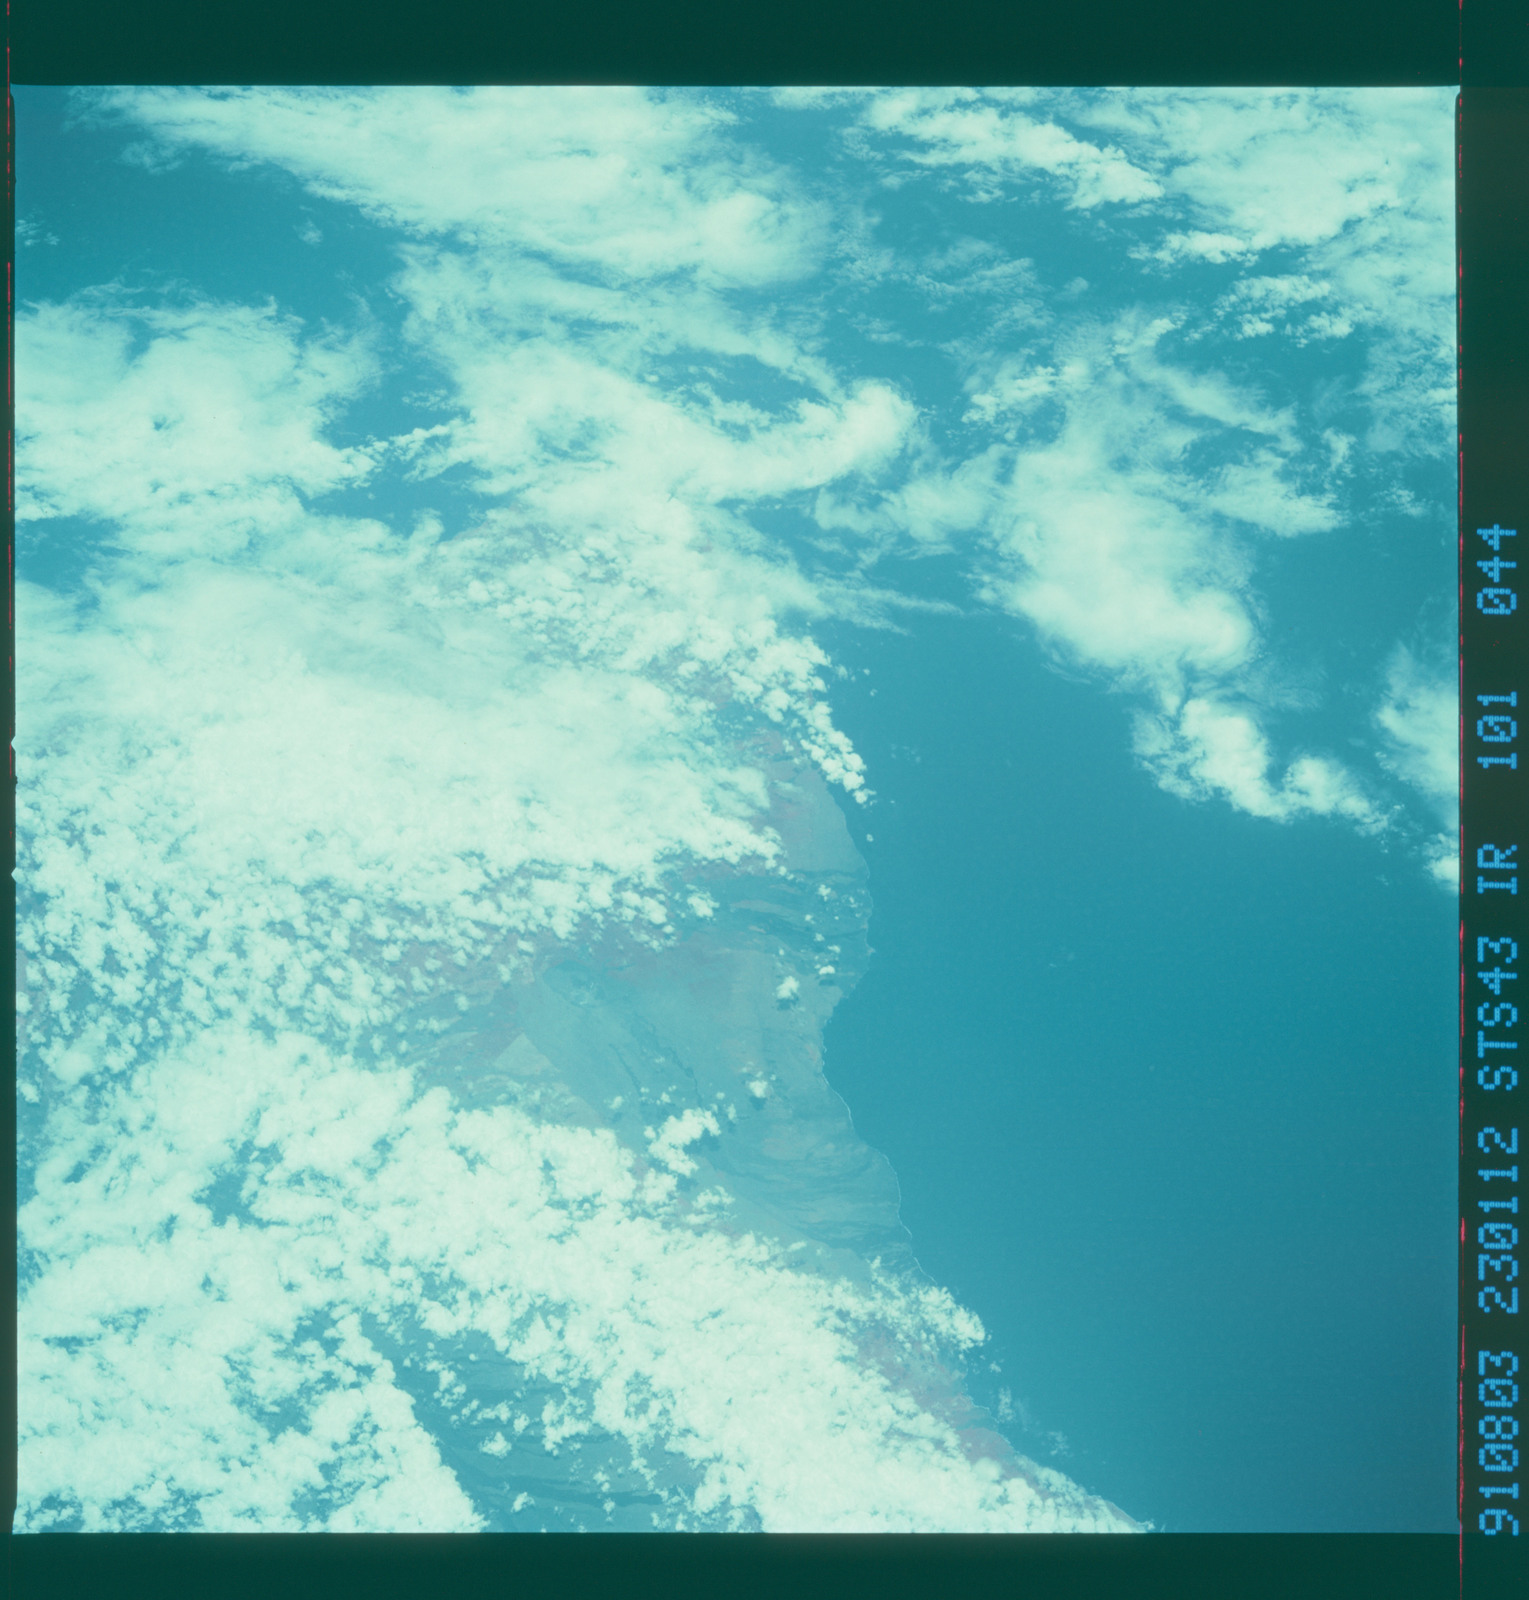 S43-101-044 - STS-043 - STS-43 earth observations